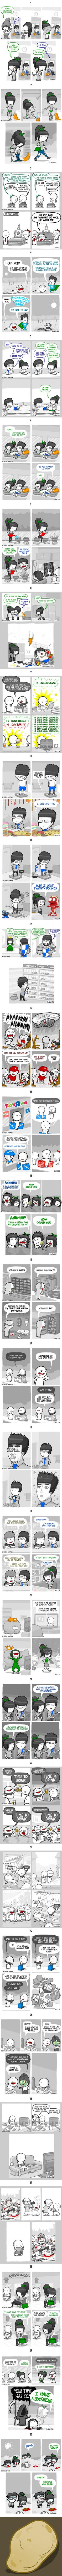 30 Comics That End So Unexpectedly It Will Make You Laugh